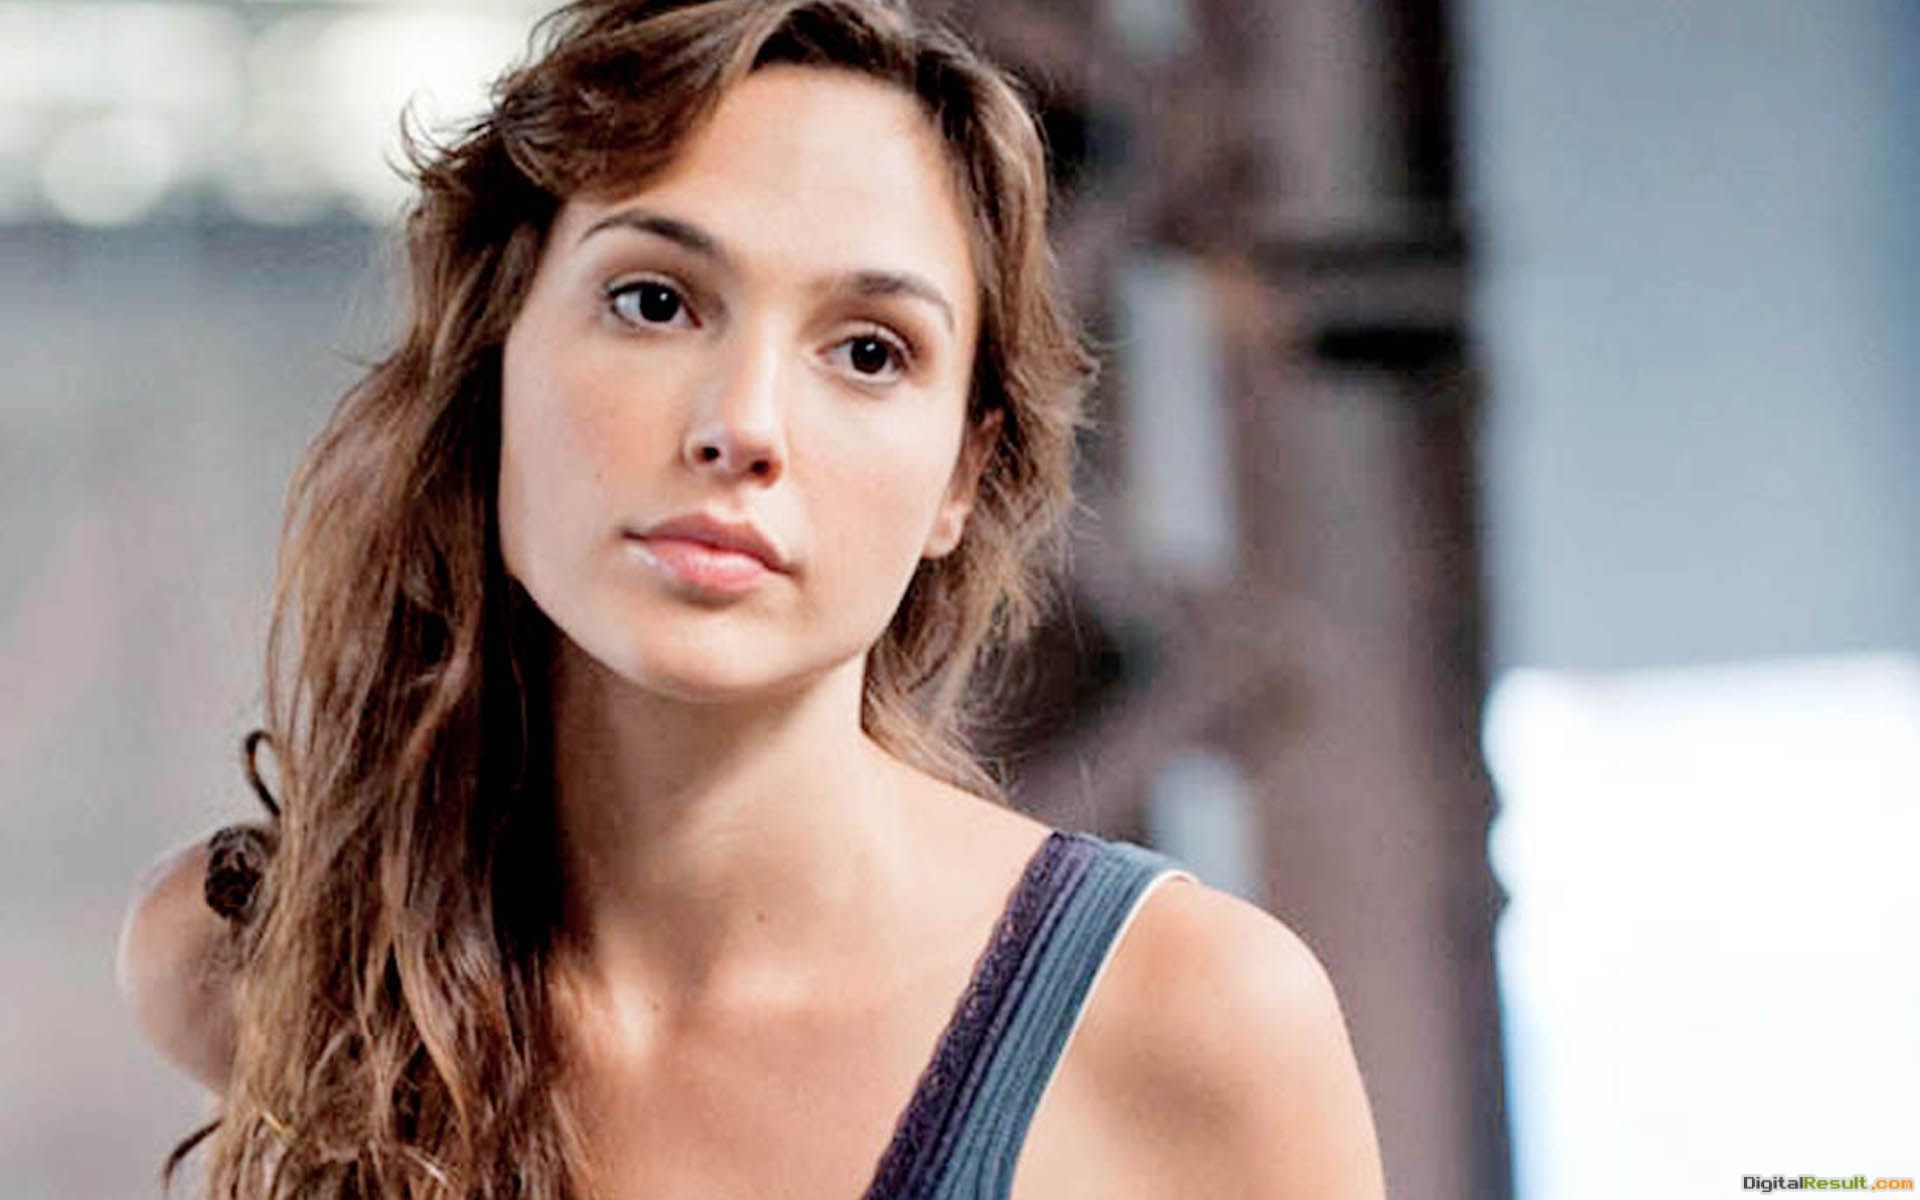 gadot wallpapers gal gadot wallpaper from movie gal gadot photo 238